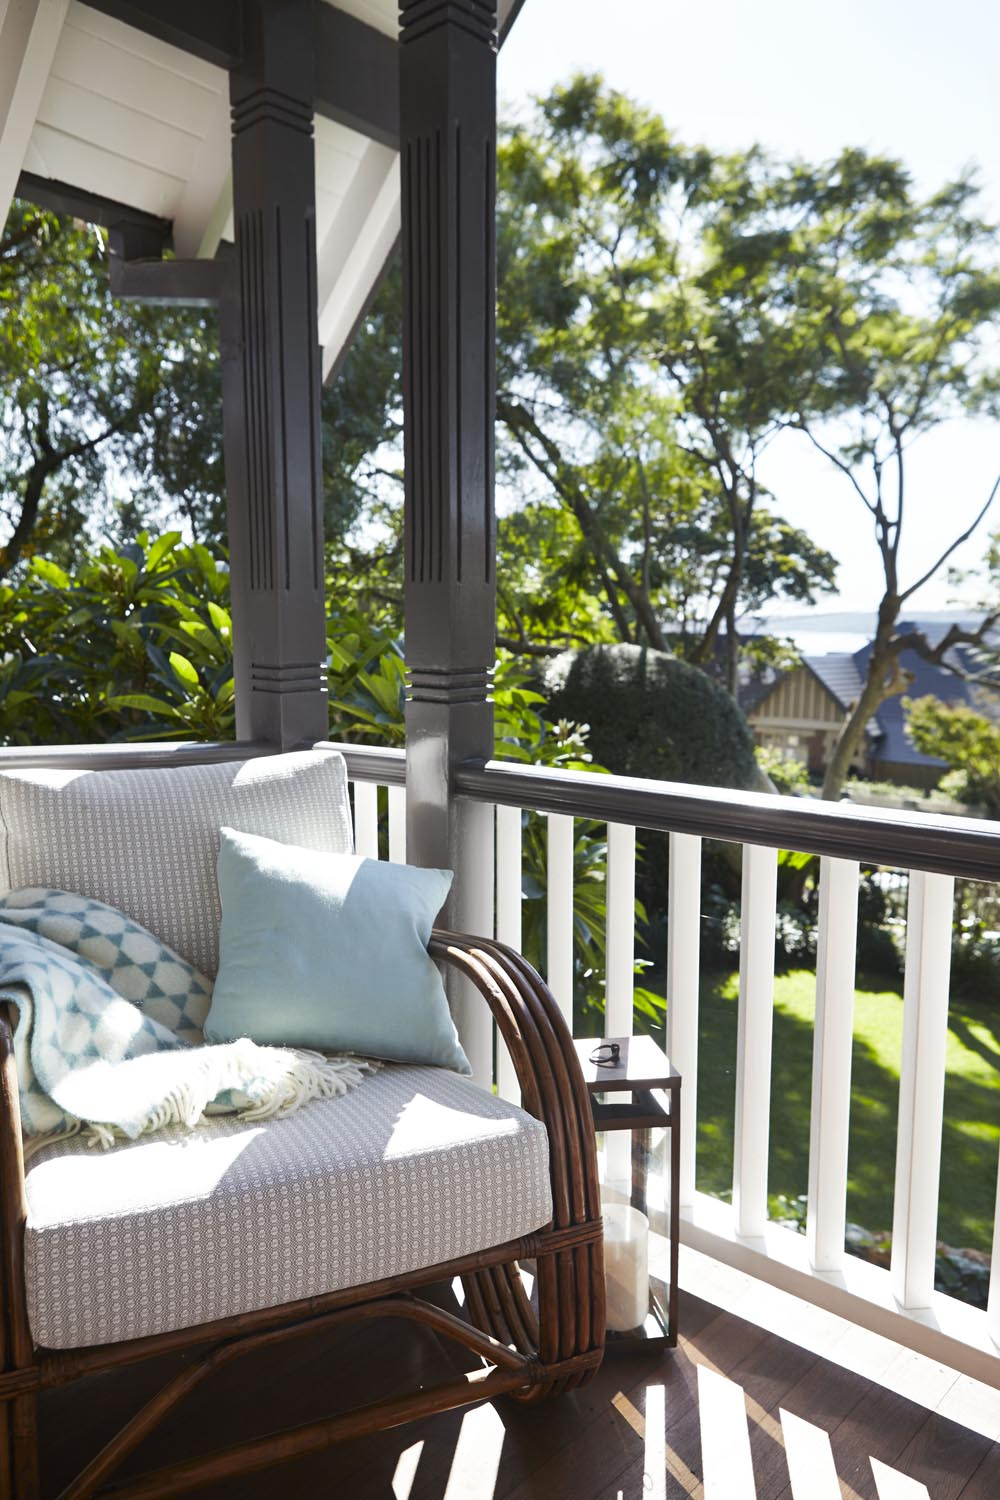 Take time out in this super comfy and traditional chair from our Mosman Balcony Garden project